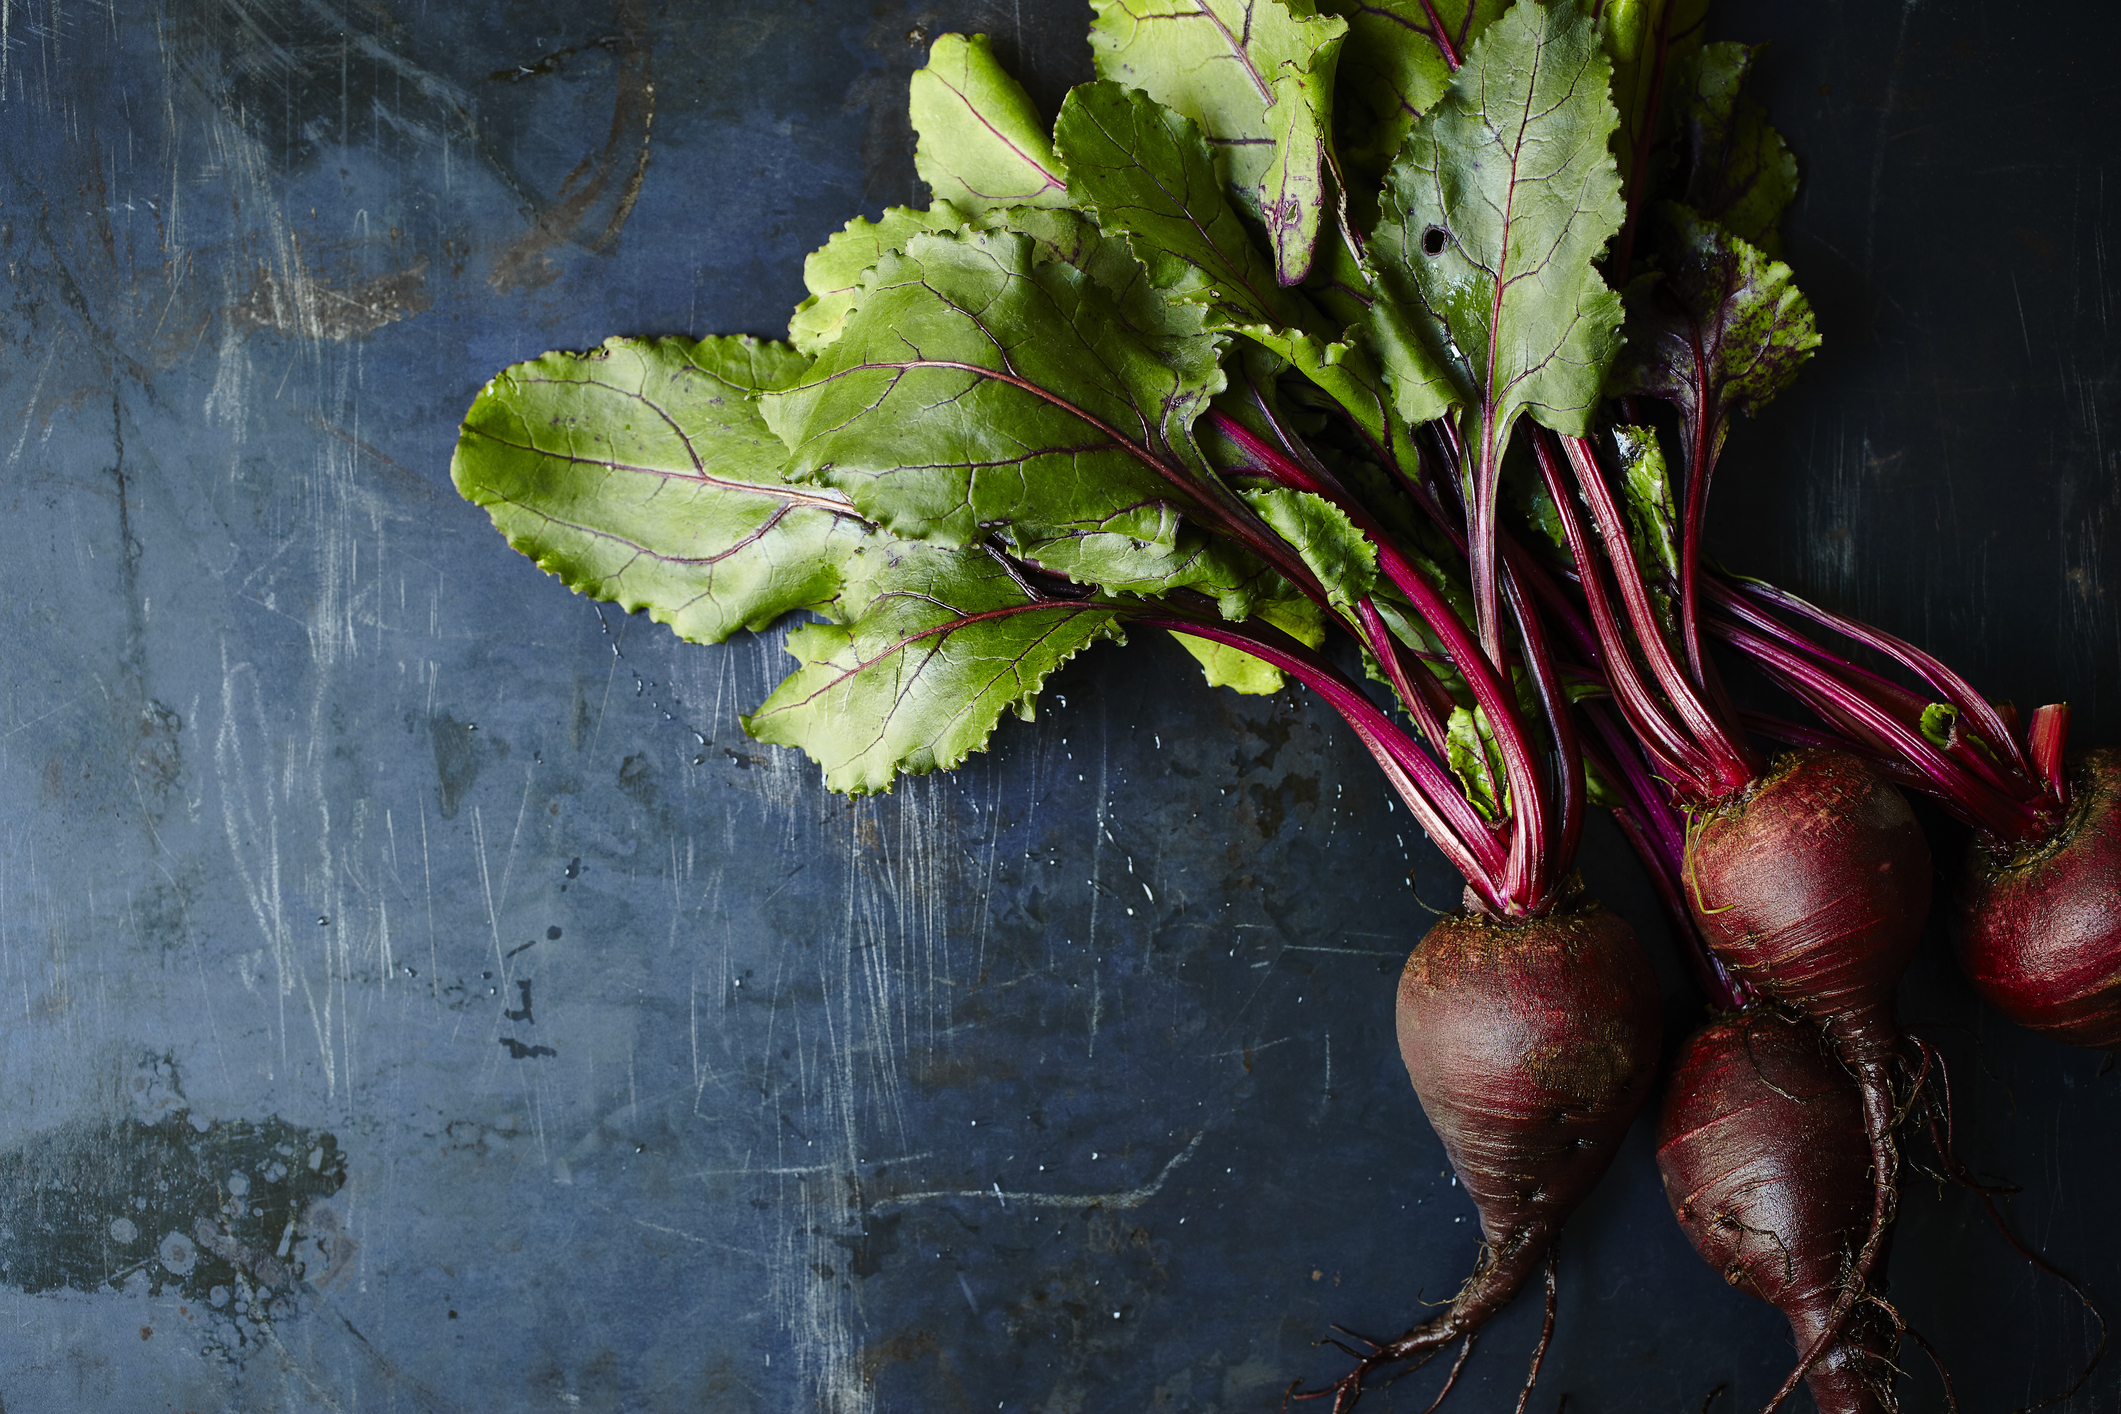 Nitric Oxide - Determine if Beets Can Enhance Your Health and Performance